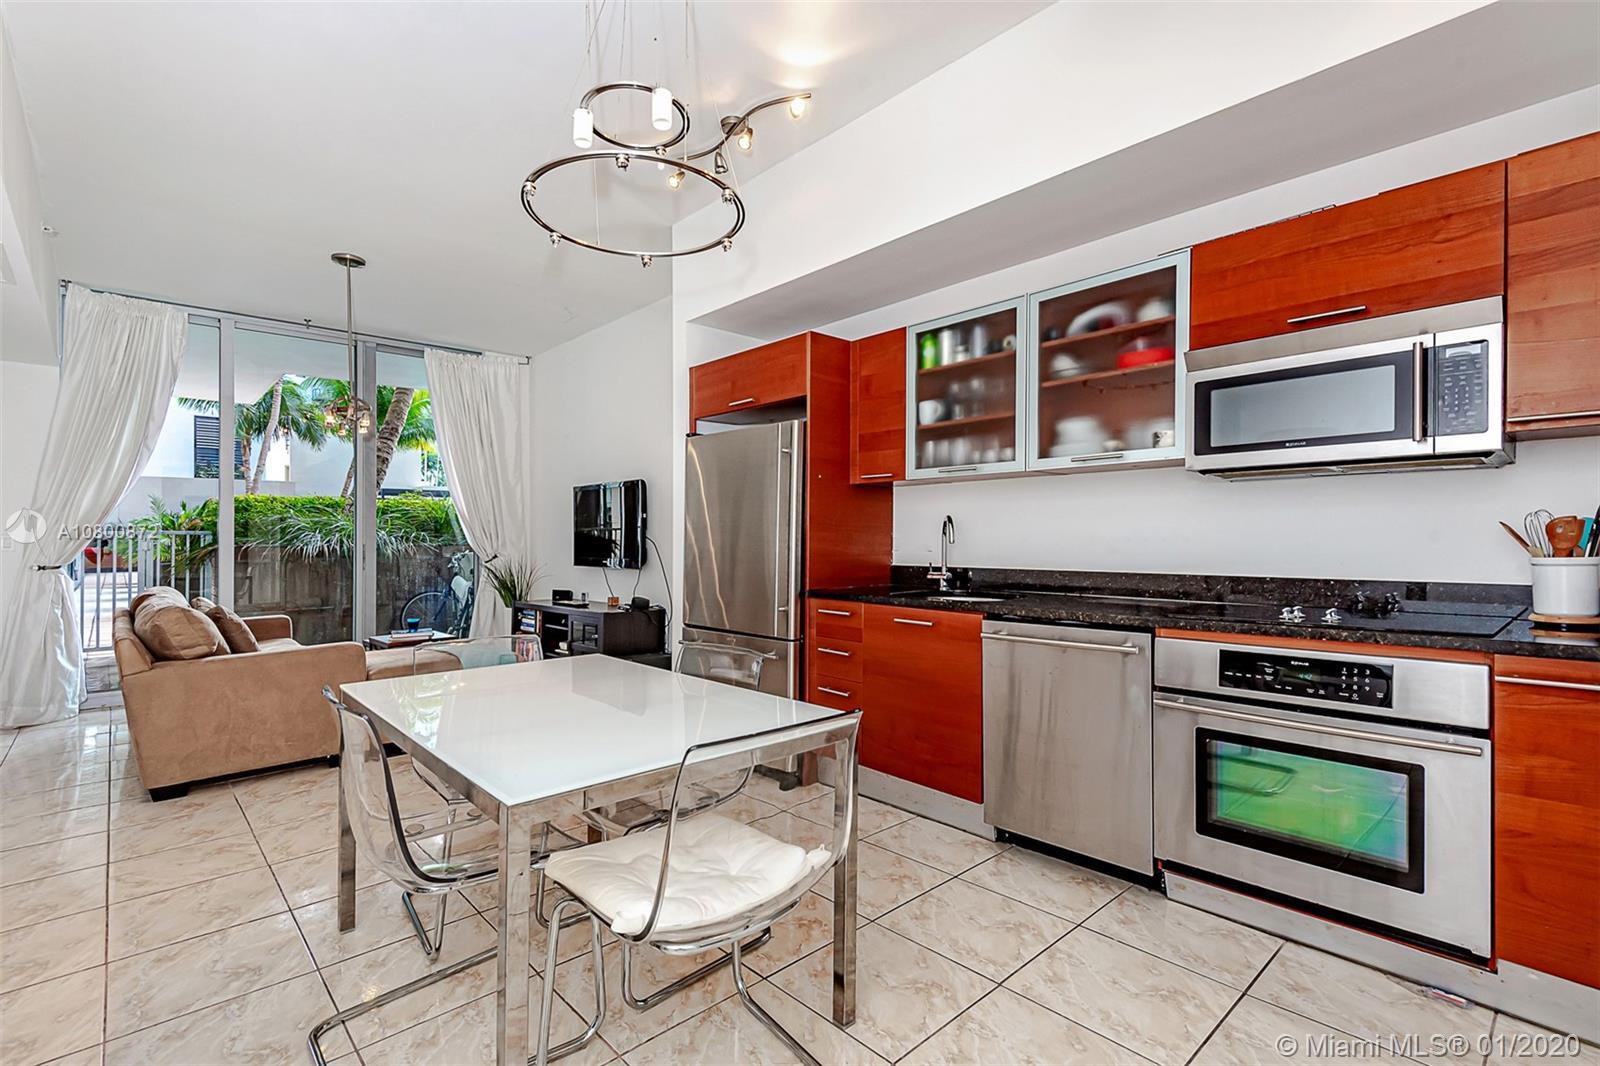 Beautiful one bedroom , one bath condo, facing the pool. Easy access for relaxation and close to the